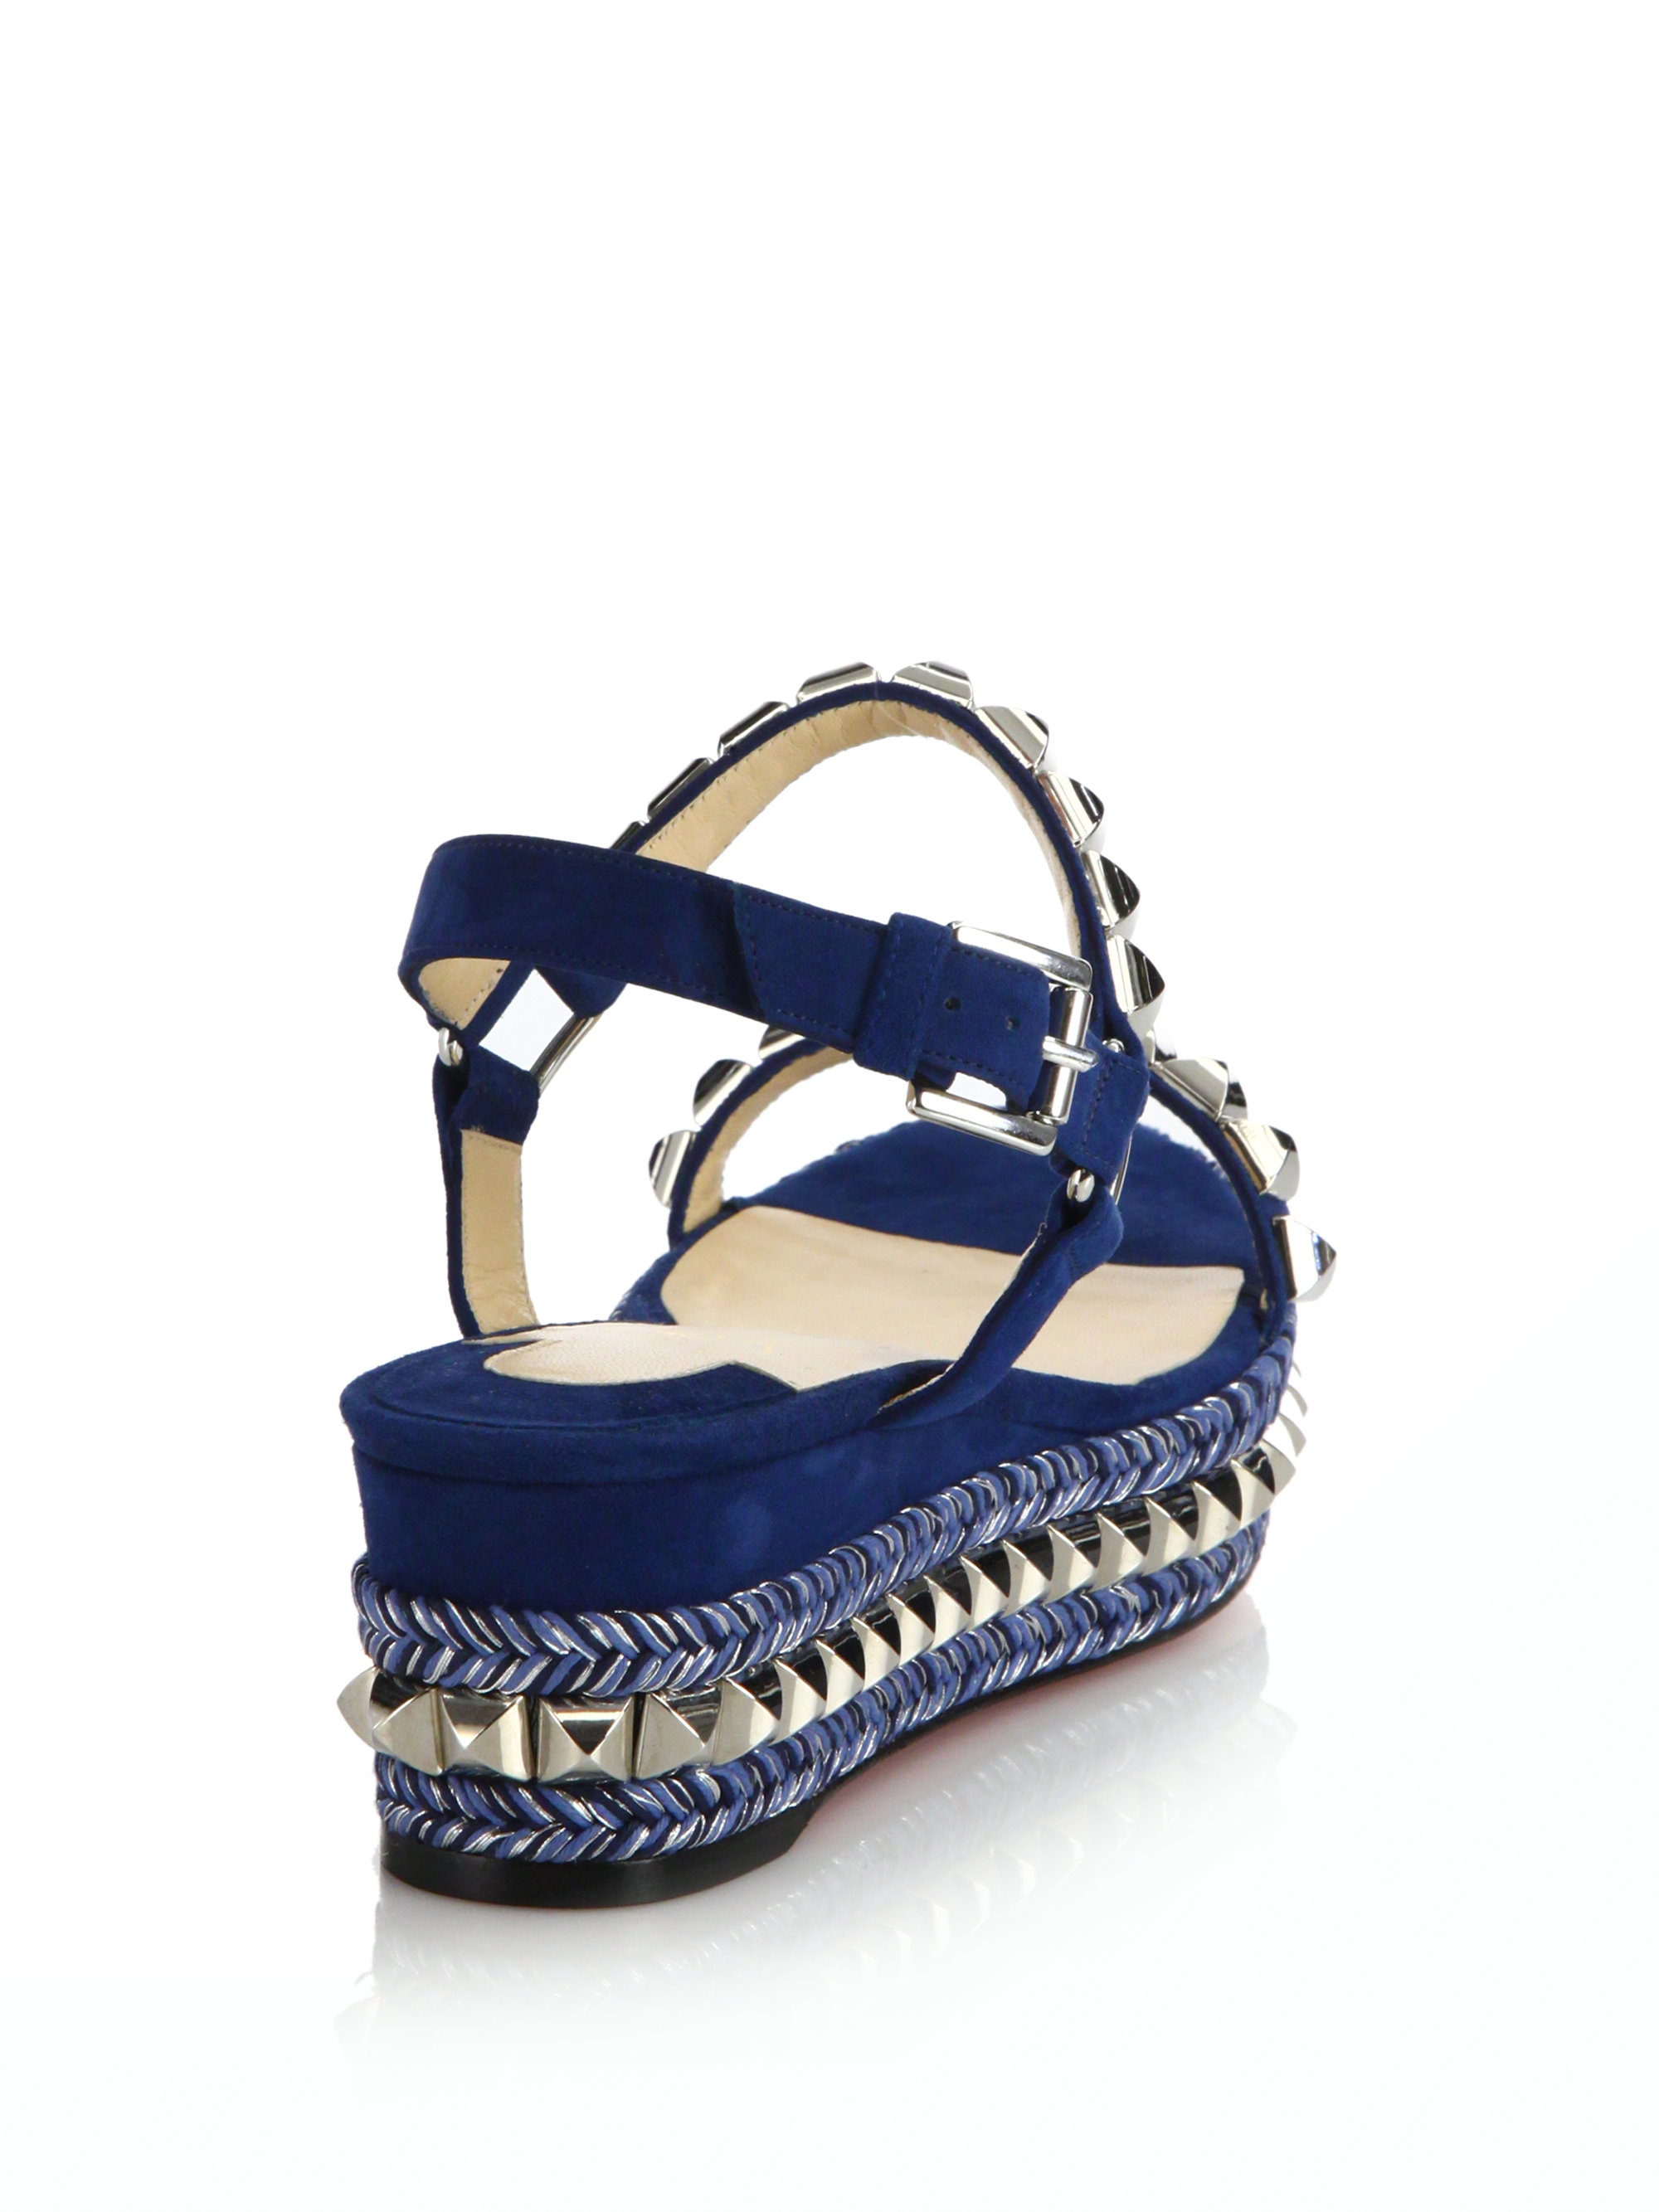 958479ab232 ... ireland lyst christian louboutin suede leather platform sandals in blue  3549a 5f503